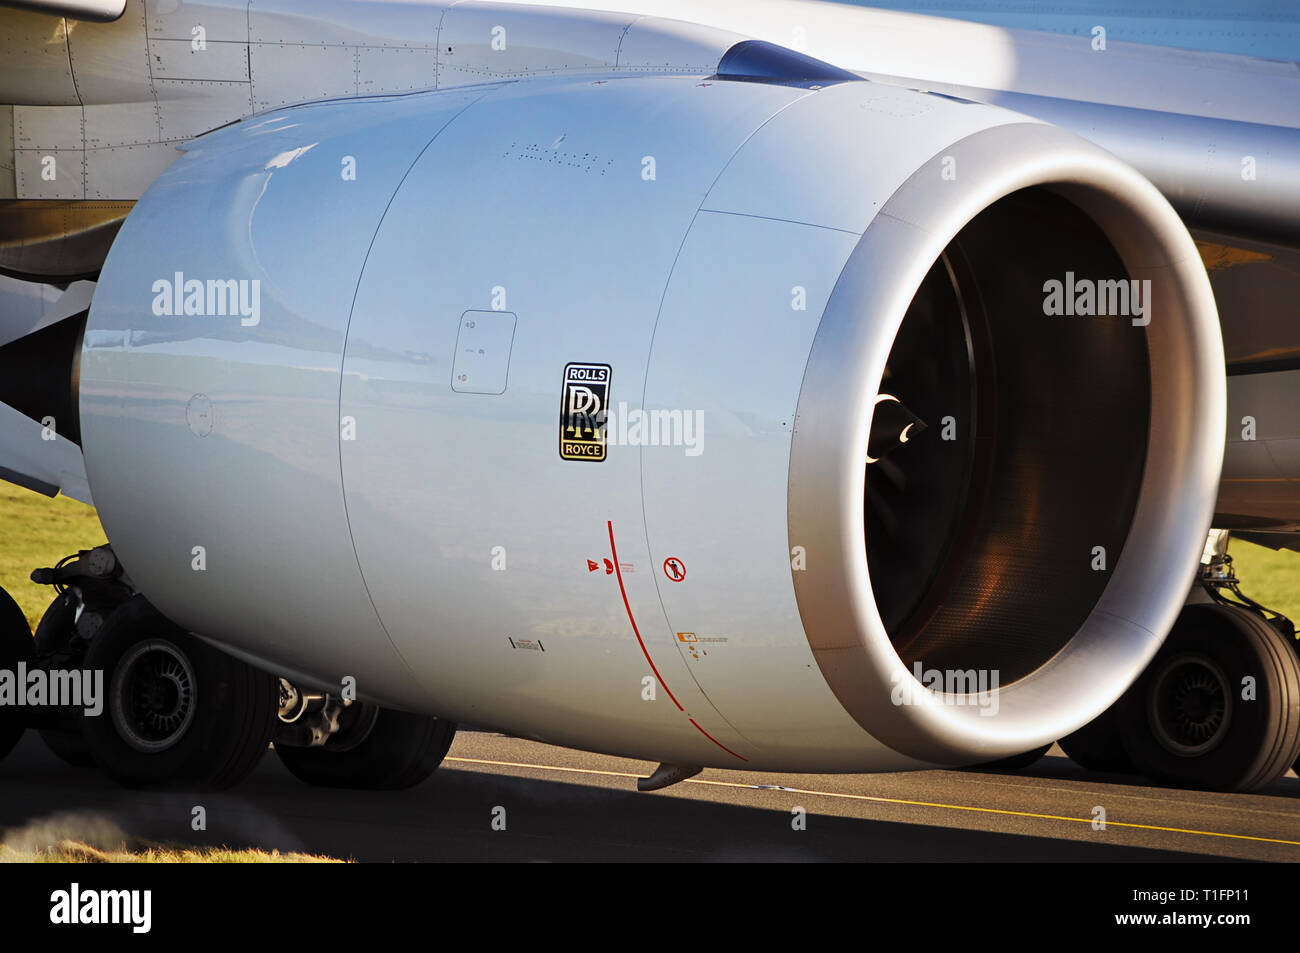 Manchester Airport, United Kingdom - January 8, 2018: Rolls Royce Trent XWB turbofan jet engine taxiing the aircraft to the runway. - Stock Image